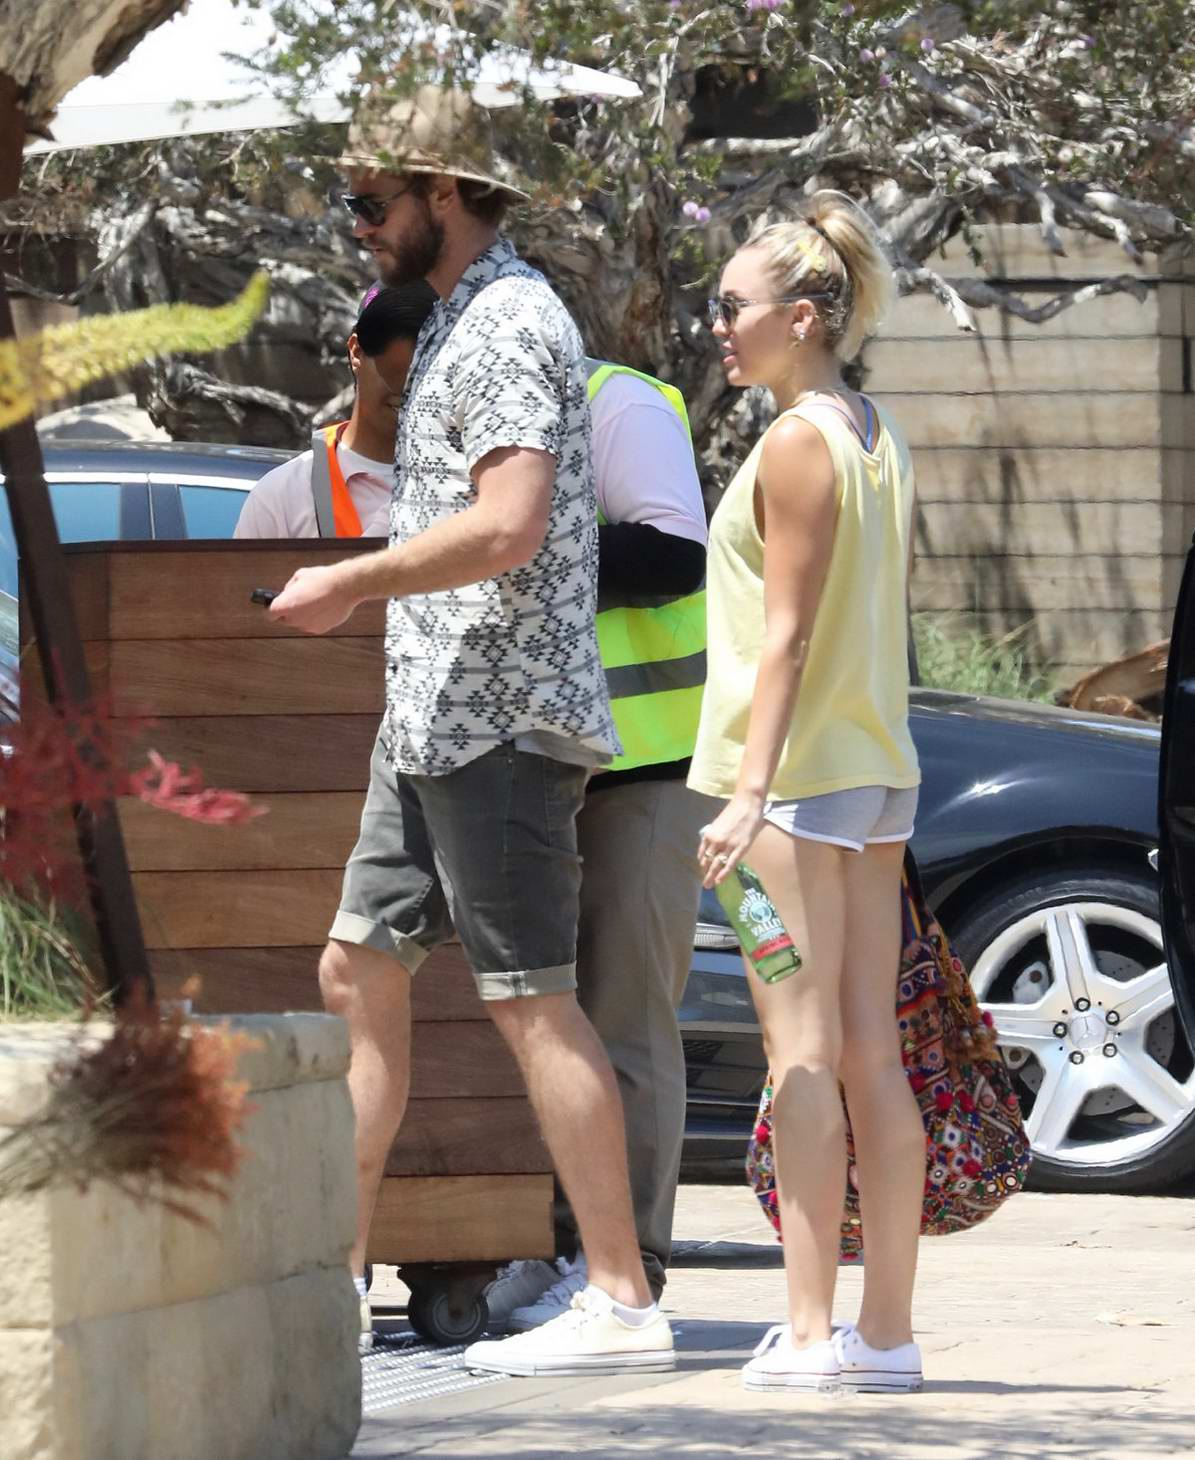 Miley Cyrus and Liam Hemsworth spotted at Soho House in Malibu